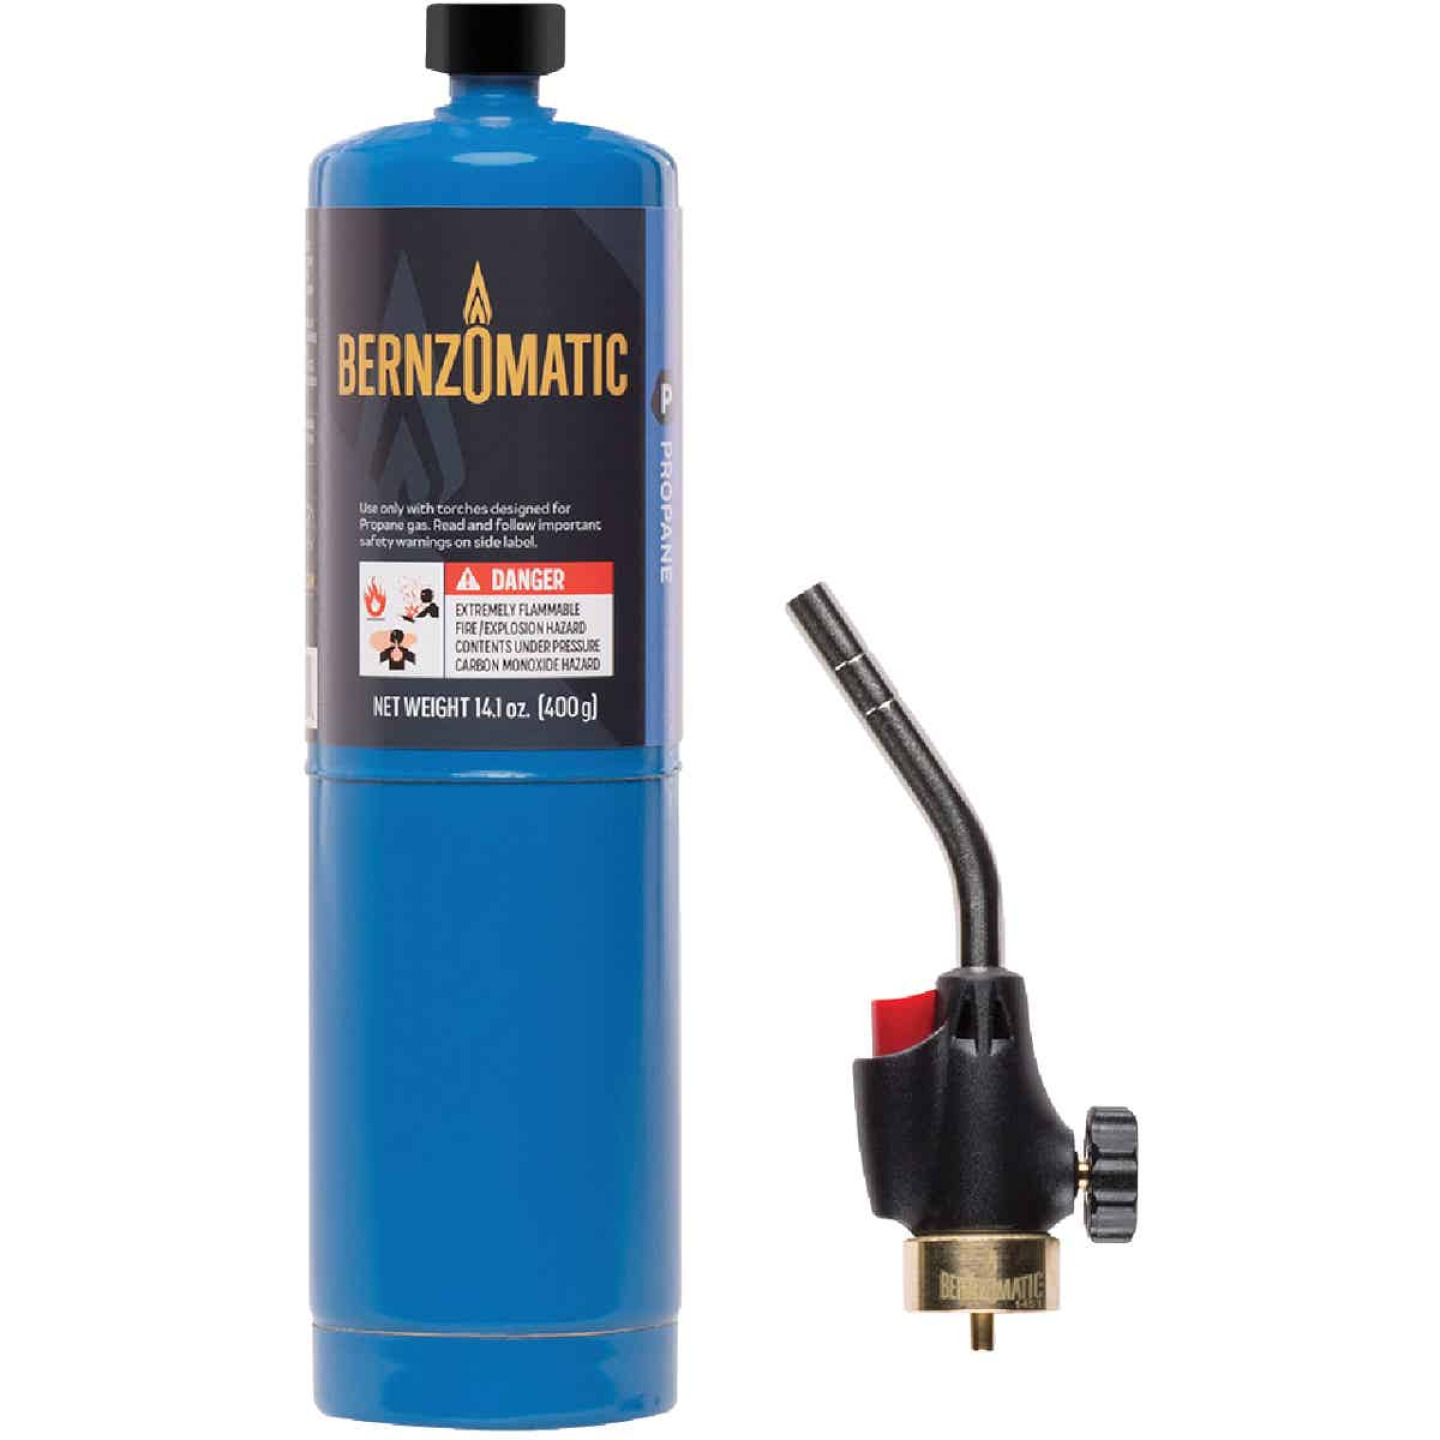 Bernzomatic Basic Propane Torch Kit with Built-In Ignition Image 1